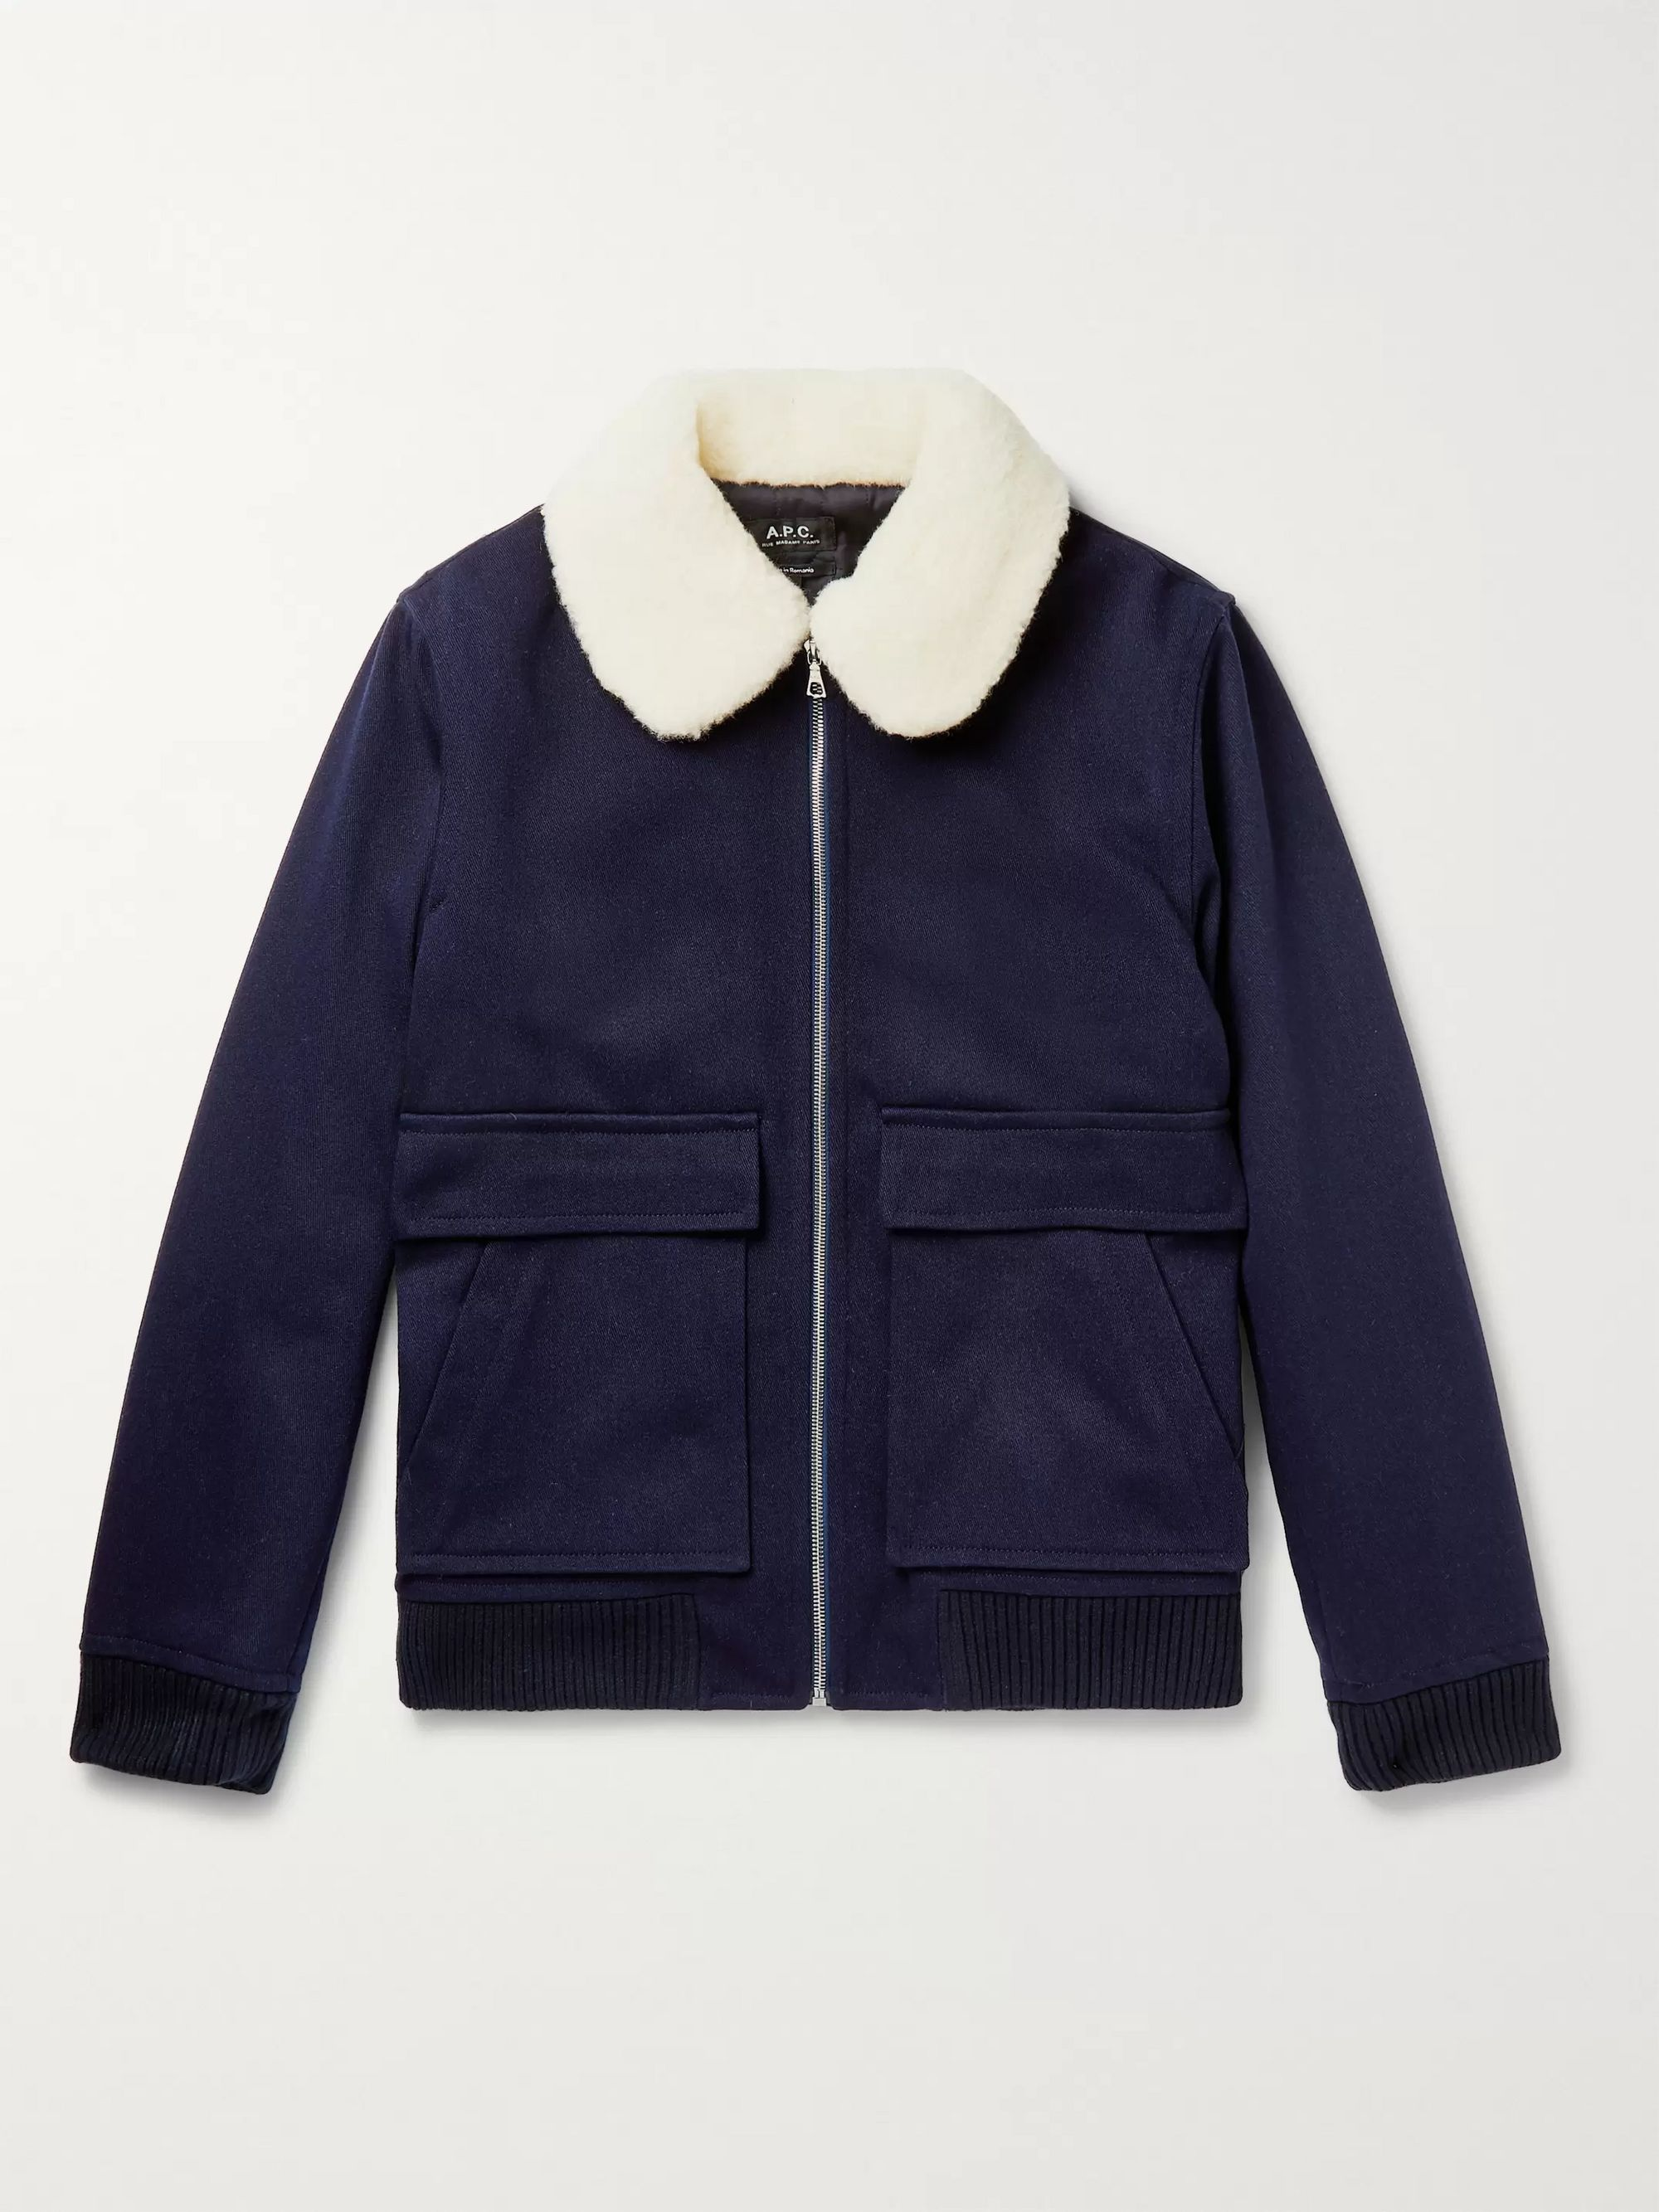 A.P.C. Shearling-Trimmed Wool-Blend Twill Blouson Jacket